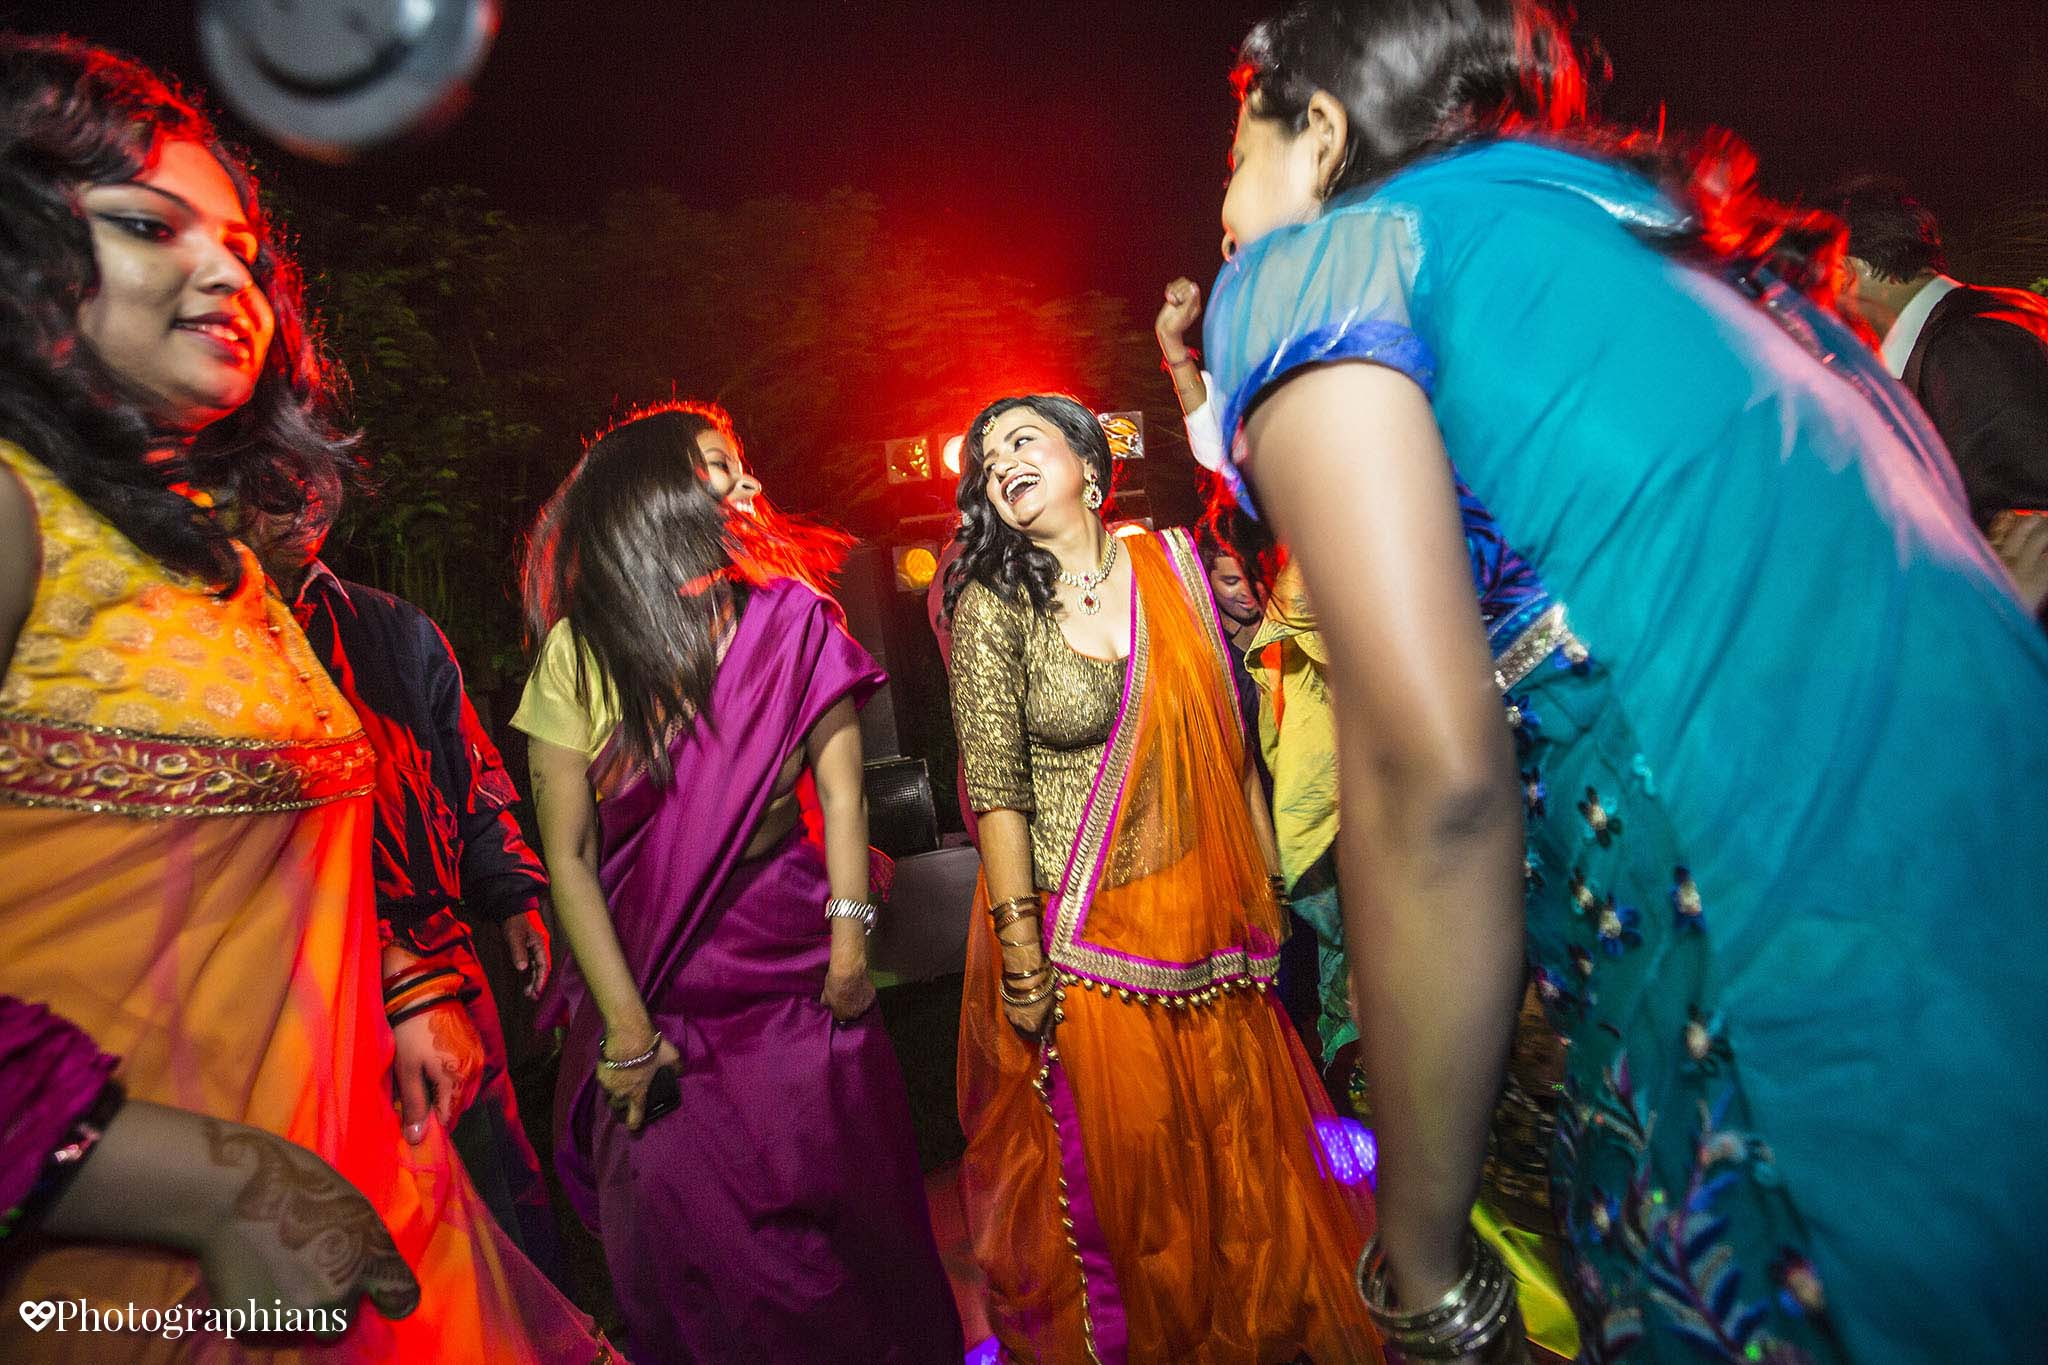 Photographians_Indian_Destination_Wedding_183